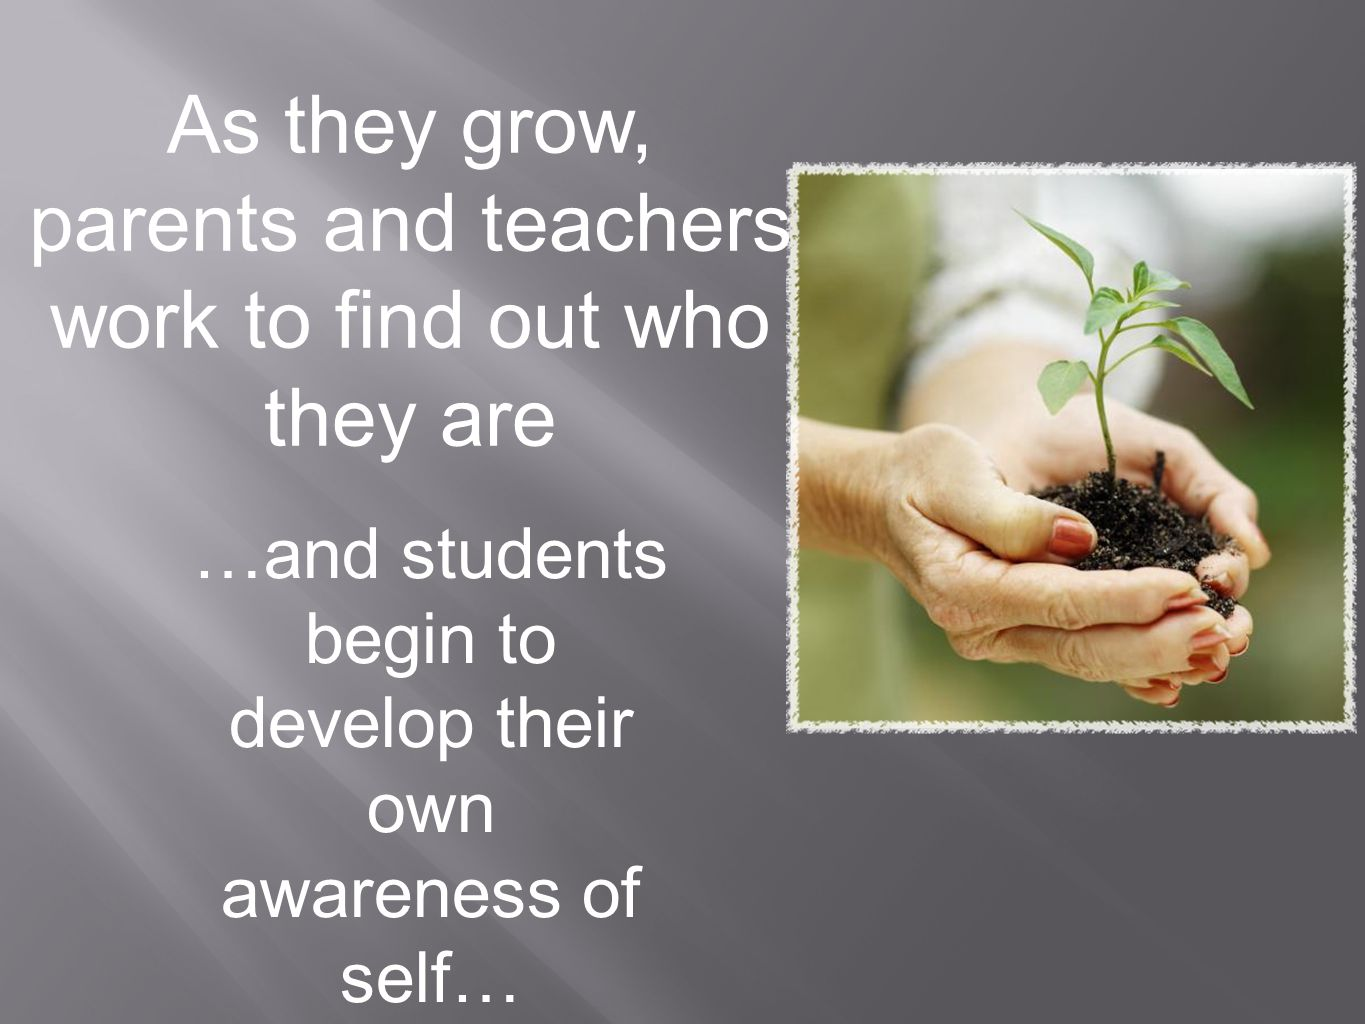 As they grow, parents and teachers work to find out who they are …and students begin to develop their own awareness of self…